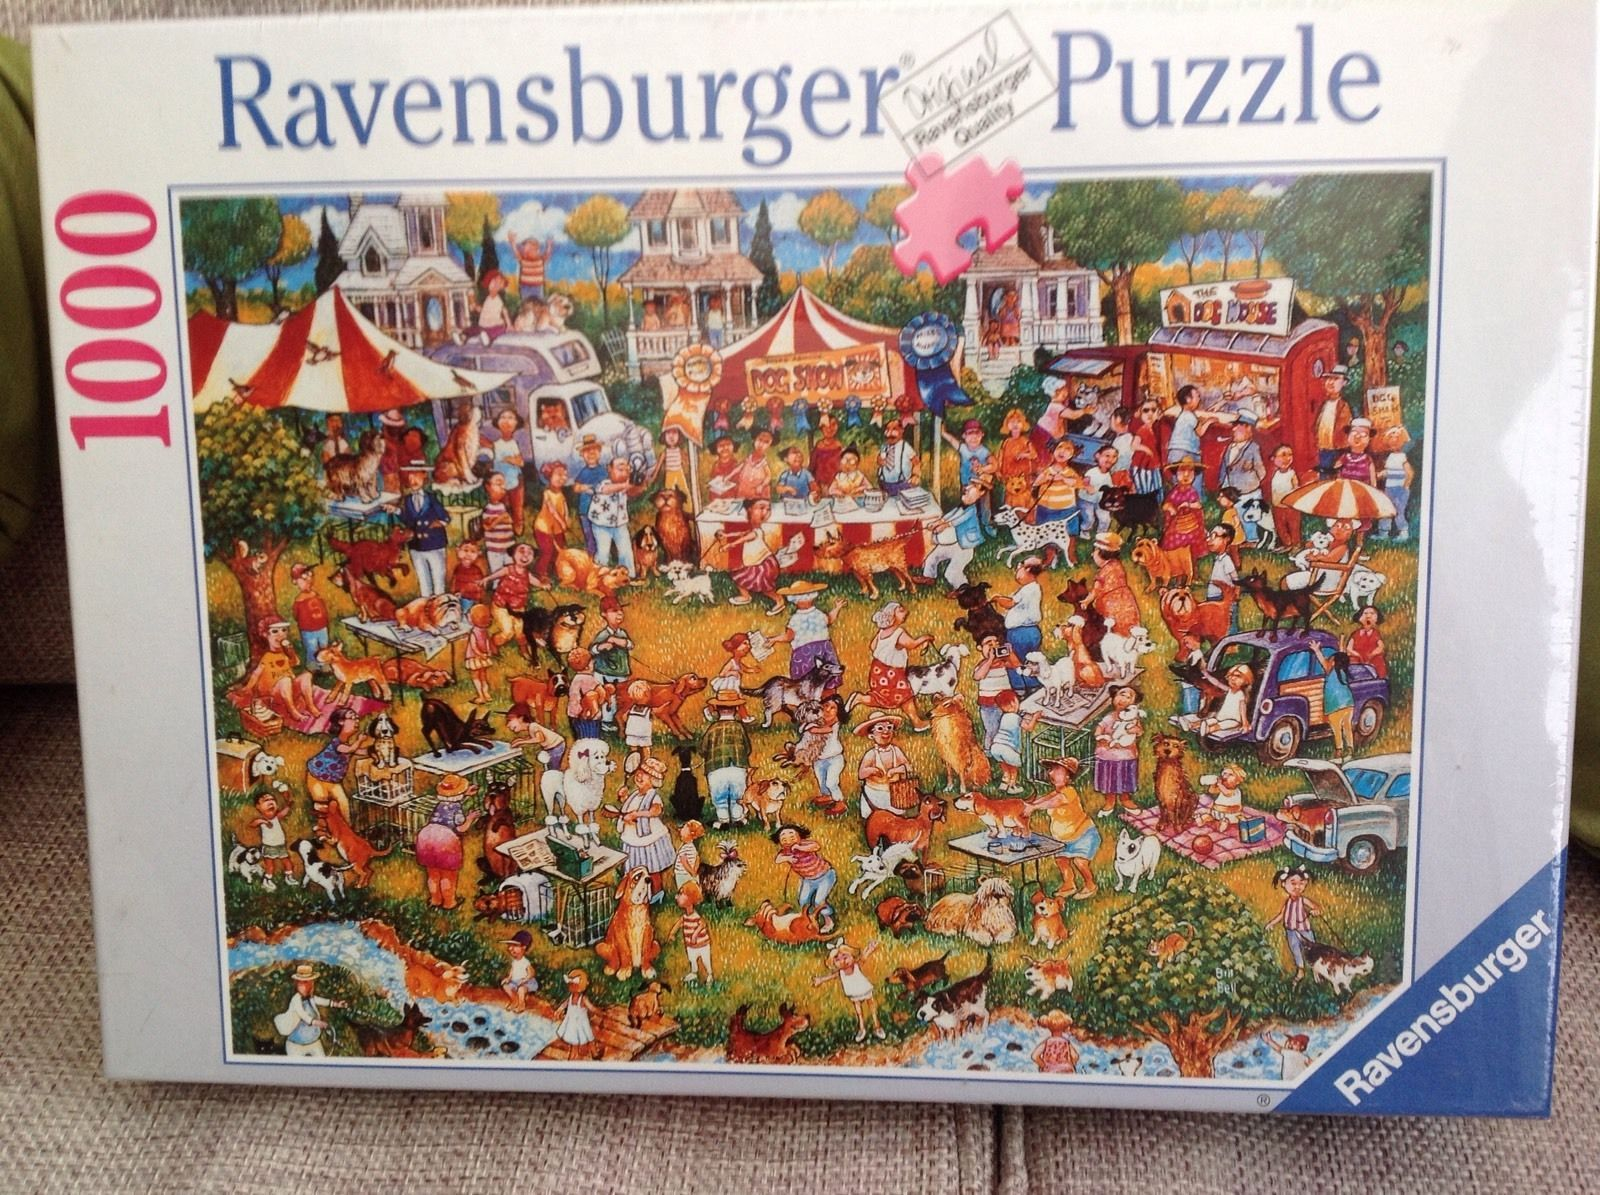 Ravensburger Jigsaw Puzzle Cartoon Dog Show 1000 Piece Brand New For Sale See Photos